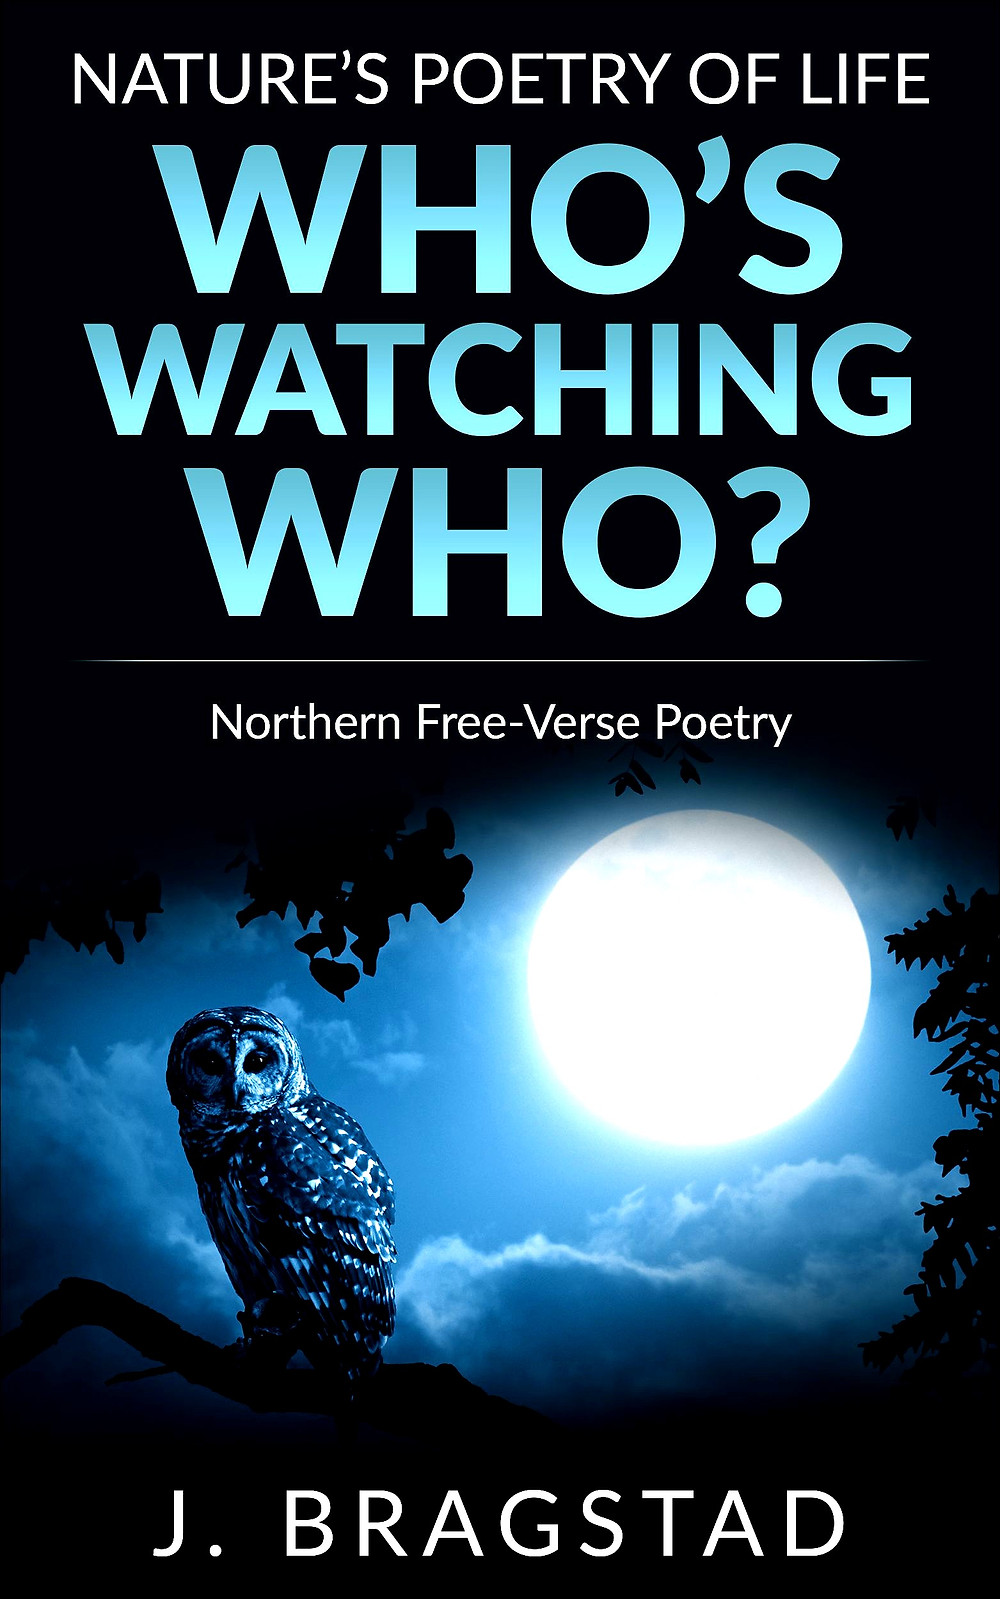 Nature's Poetry of Life, book, owl and moon, Northern Free-Verse Poetry